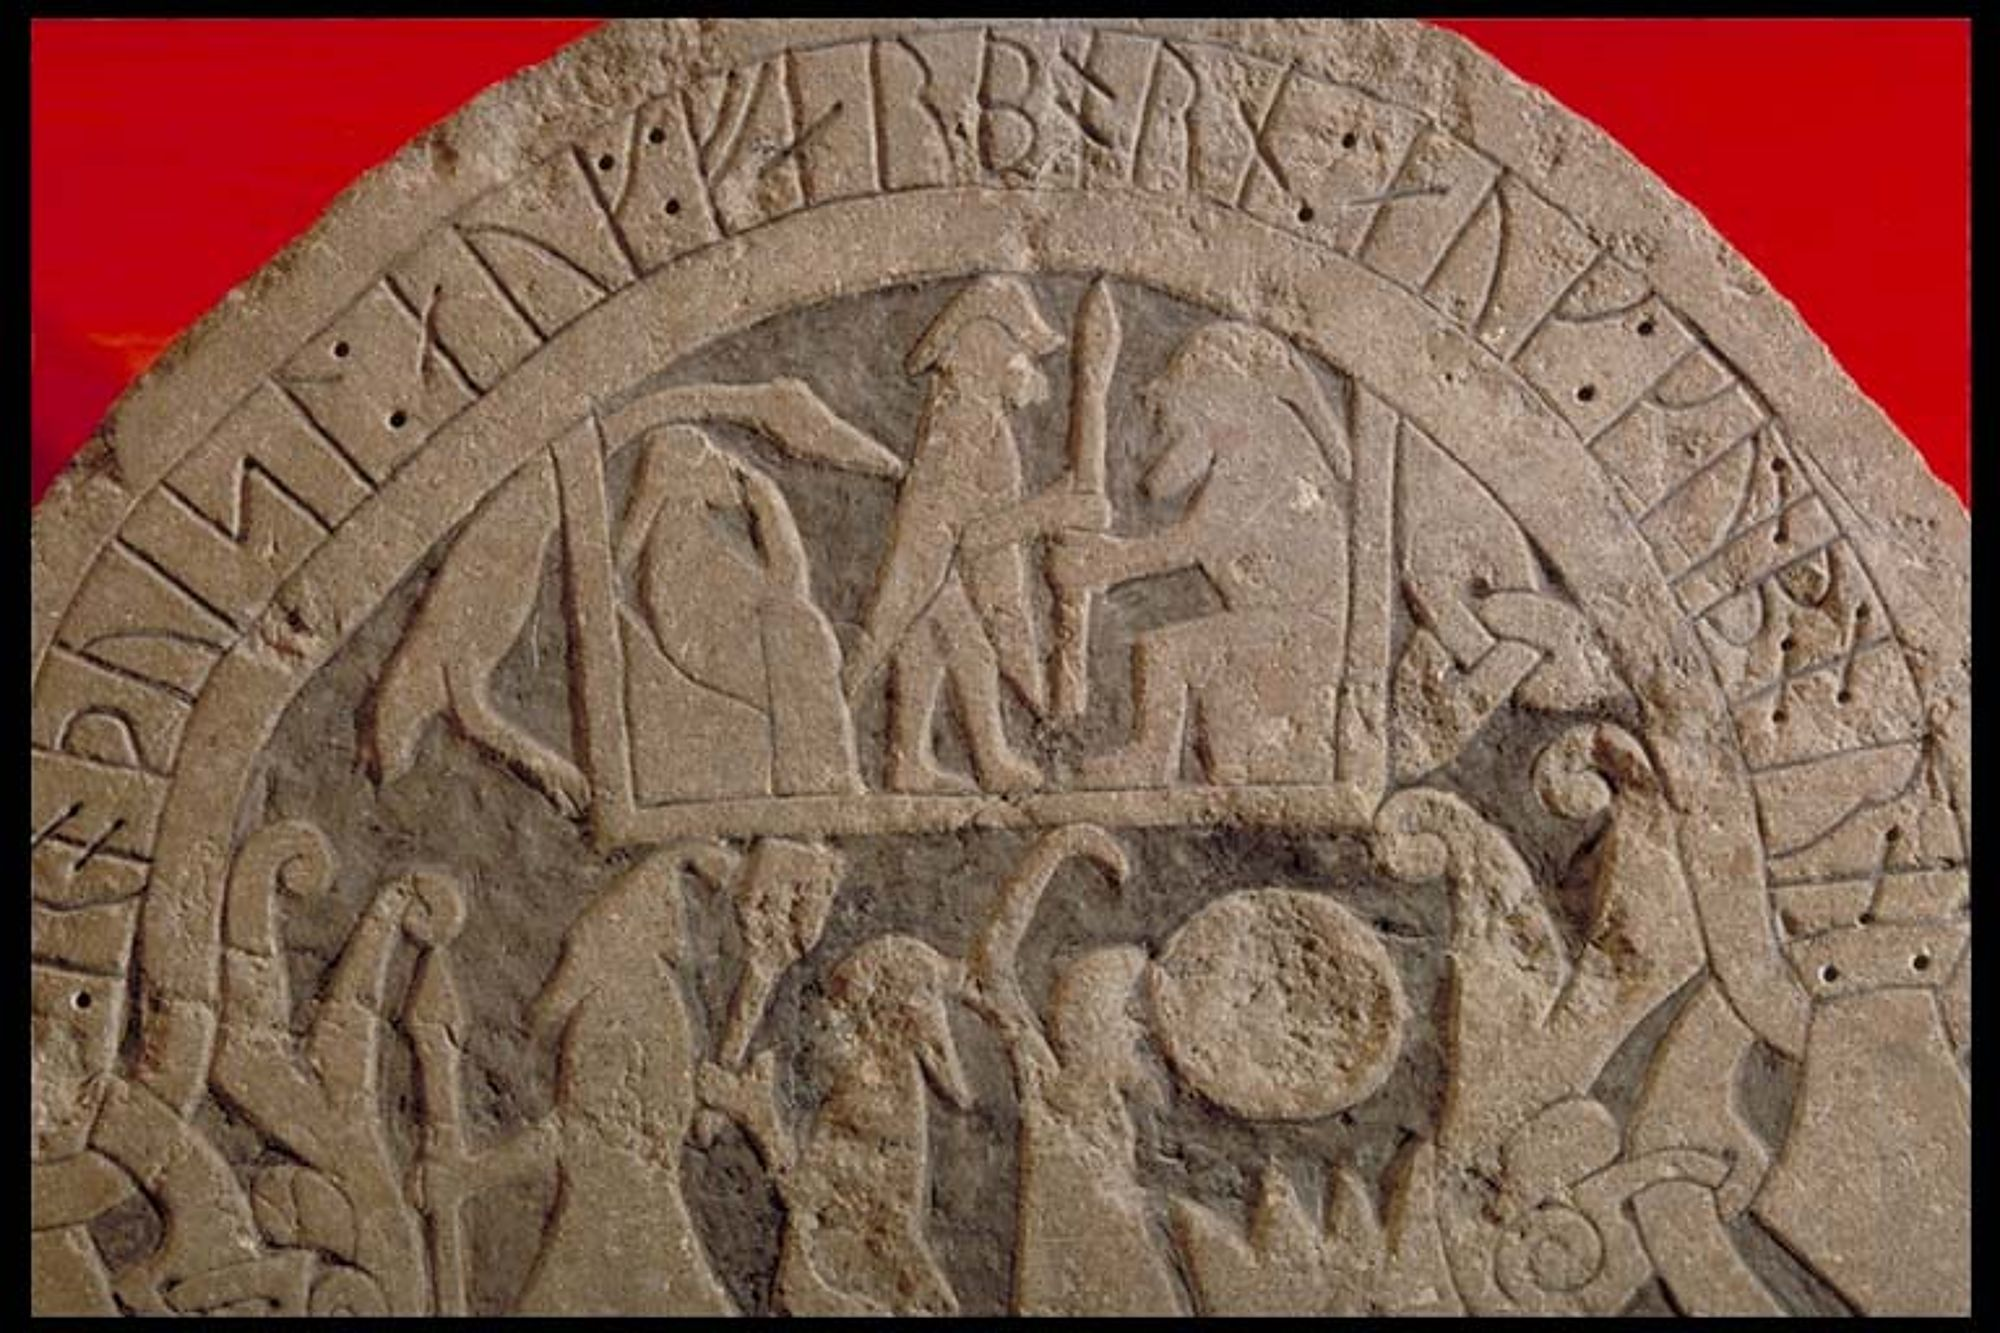 Detail of carving from Sanda churchyard, Gotland, potentially showing Valhalla, Odin, Frigg and an enormous duck. Frigg (seated, left) in a kubbstol (photo historiska.se CC BY 2.5 SE)